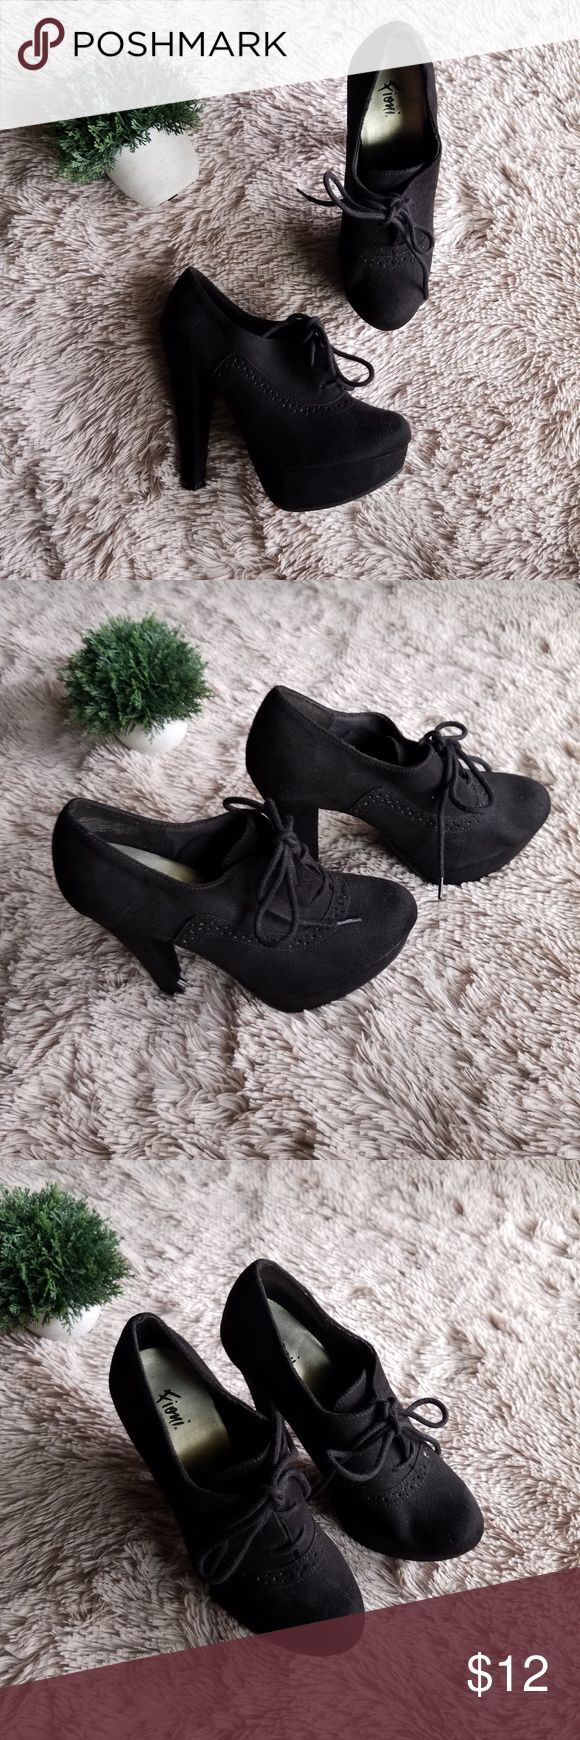 """Sz 6 Black Jetset Platform Oxford Take the classic oxford and bump it up a notch! This features a faux suede upper with traditional oxford detailing, laces for good fit, jersey lining, padded insole, 5"""" heel and sturdy outsole.  Heel: 5"""" Shoes Heels"""